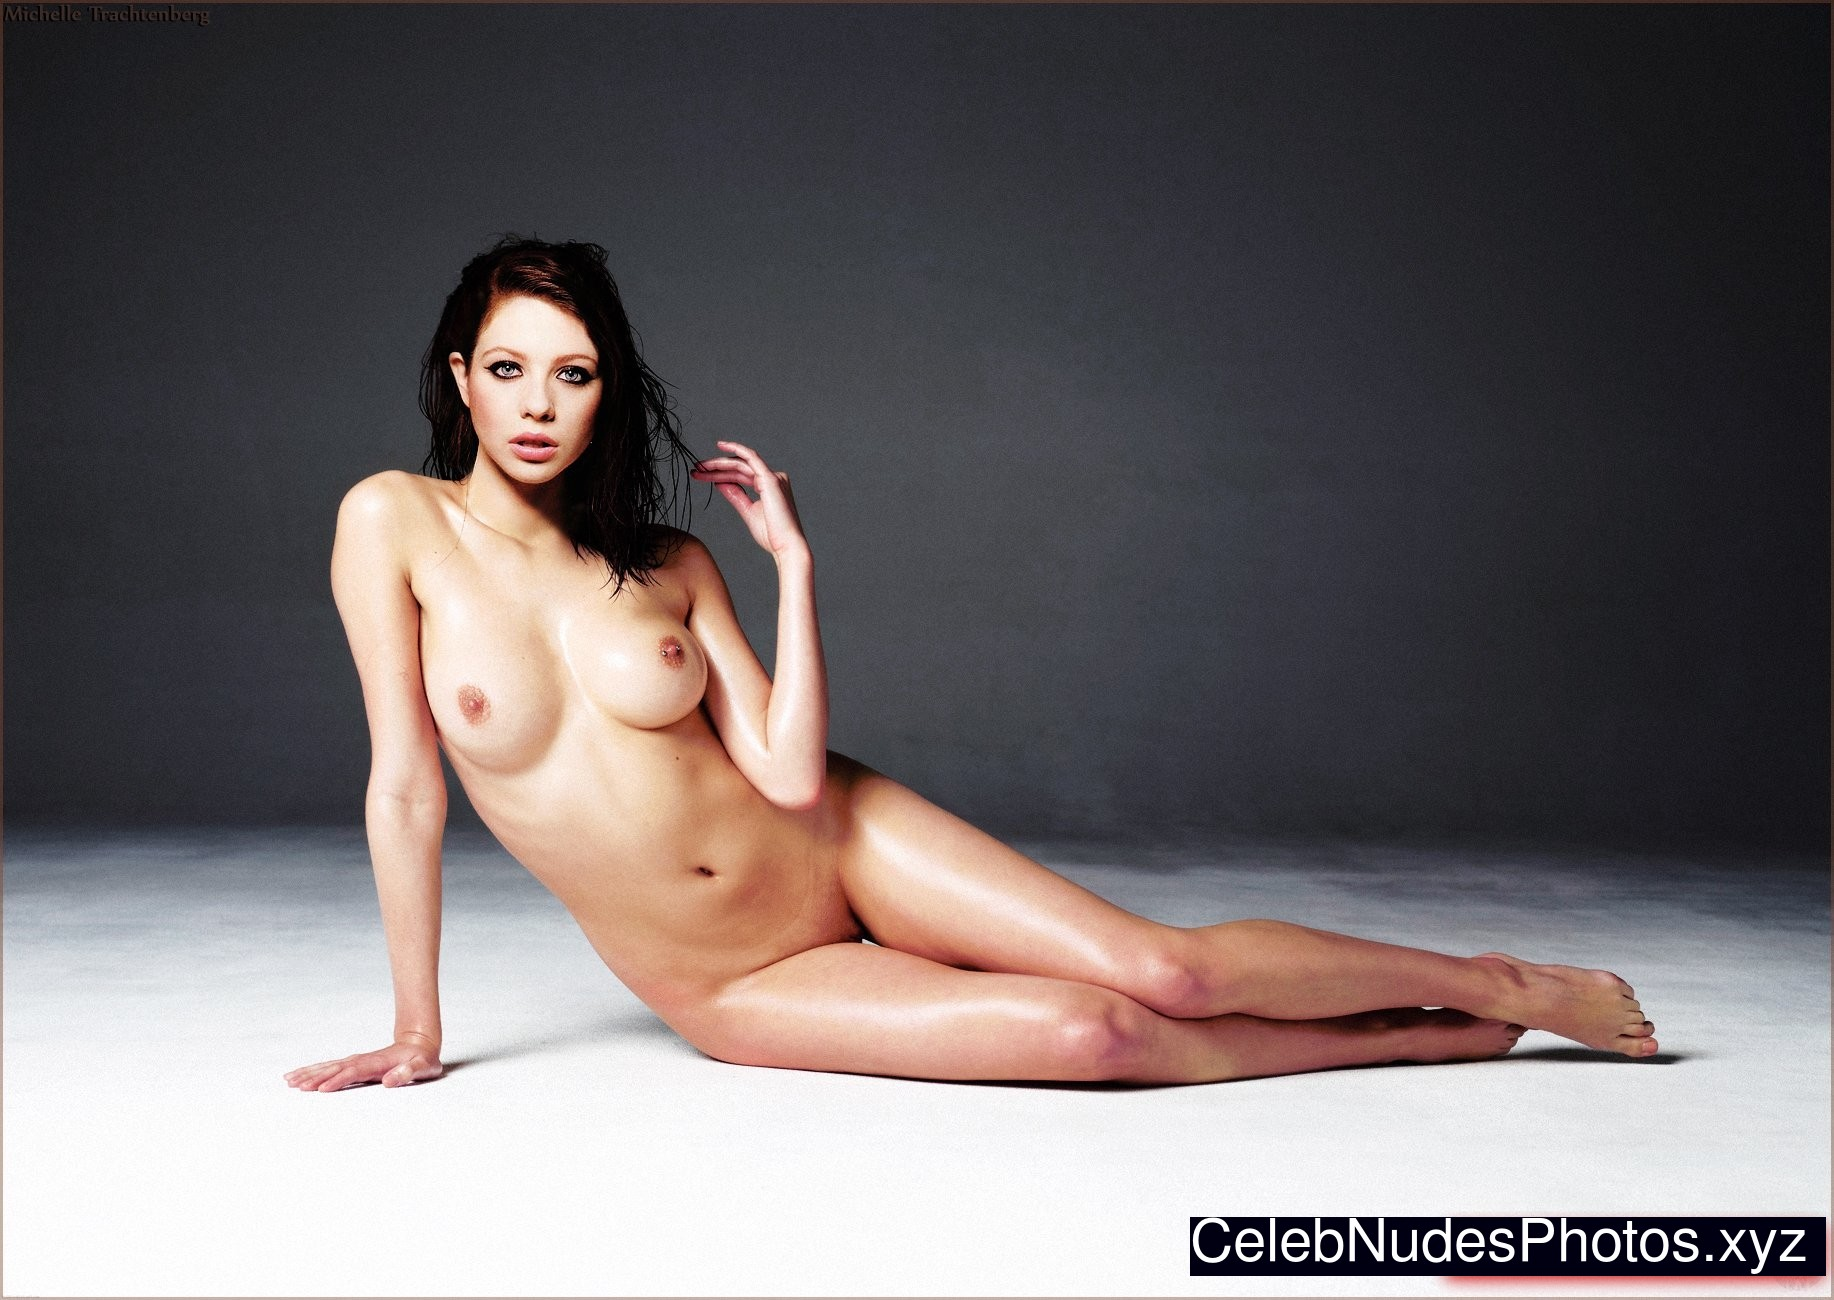 from Prince michelle trachtenberg nud sex